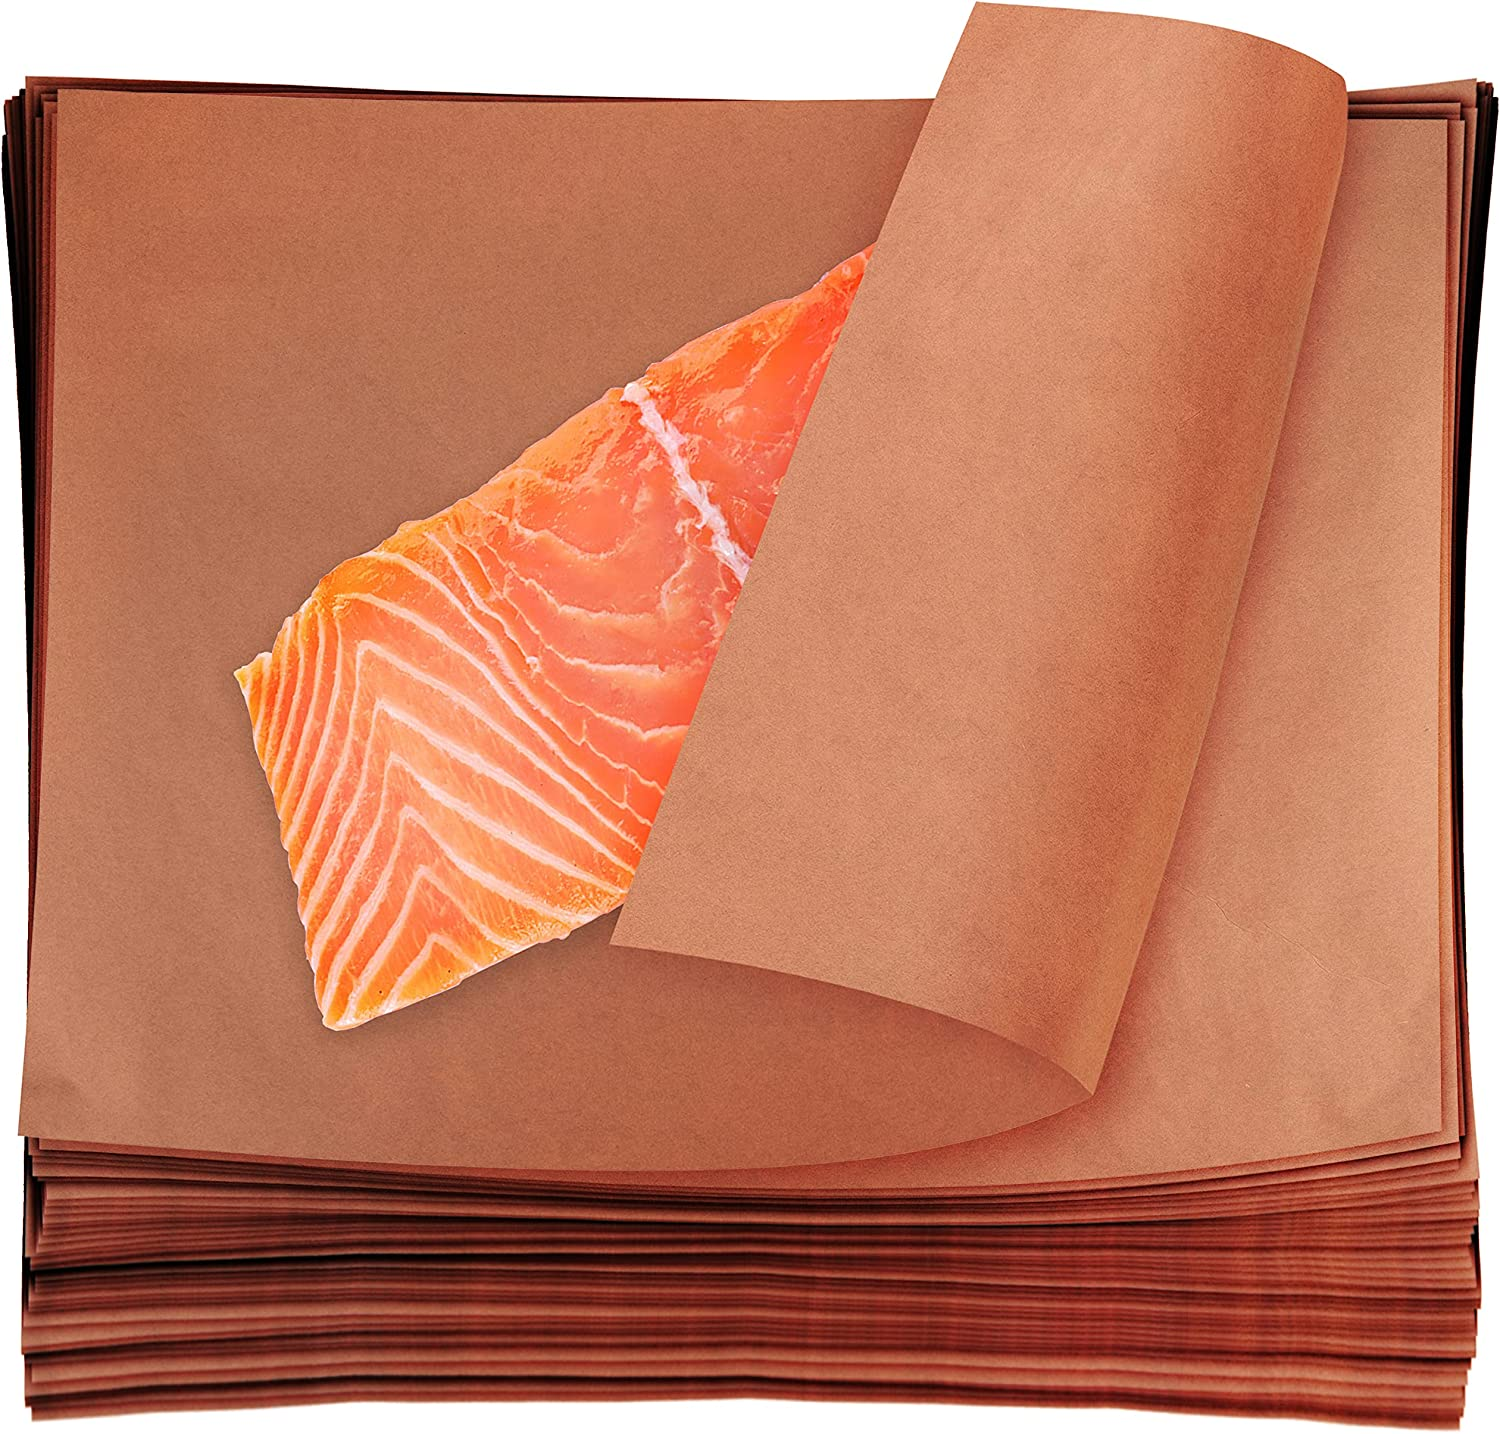 Stock Your Home 24 x 17 Butcher Paper Sheets (100 Pack) - Pre-Cut Pink Butcher Squares - Food Grade Peach Smoking Paper for Barbecuing, Brisket Smoking, Wrapping, & Storing Meats